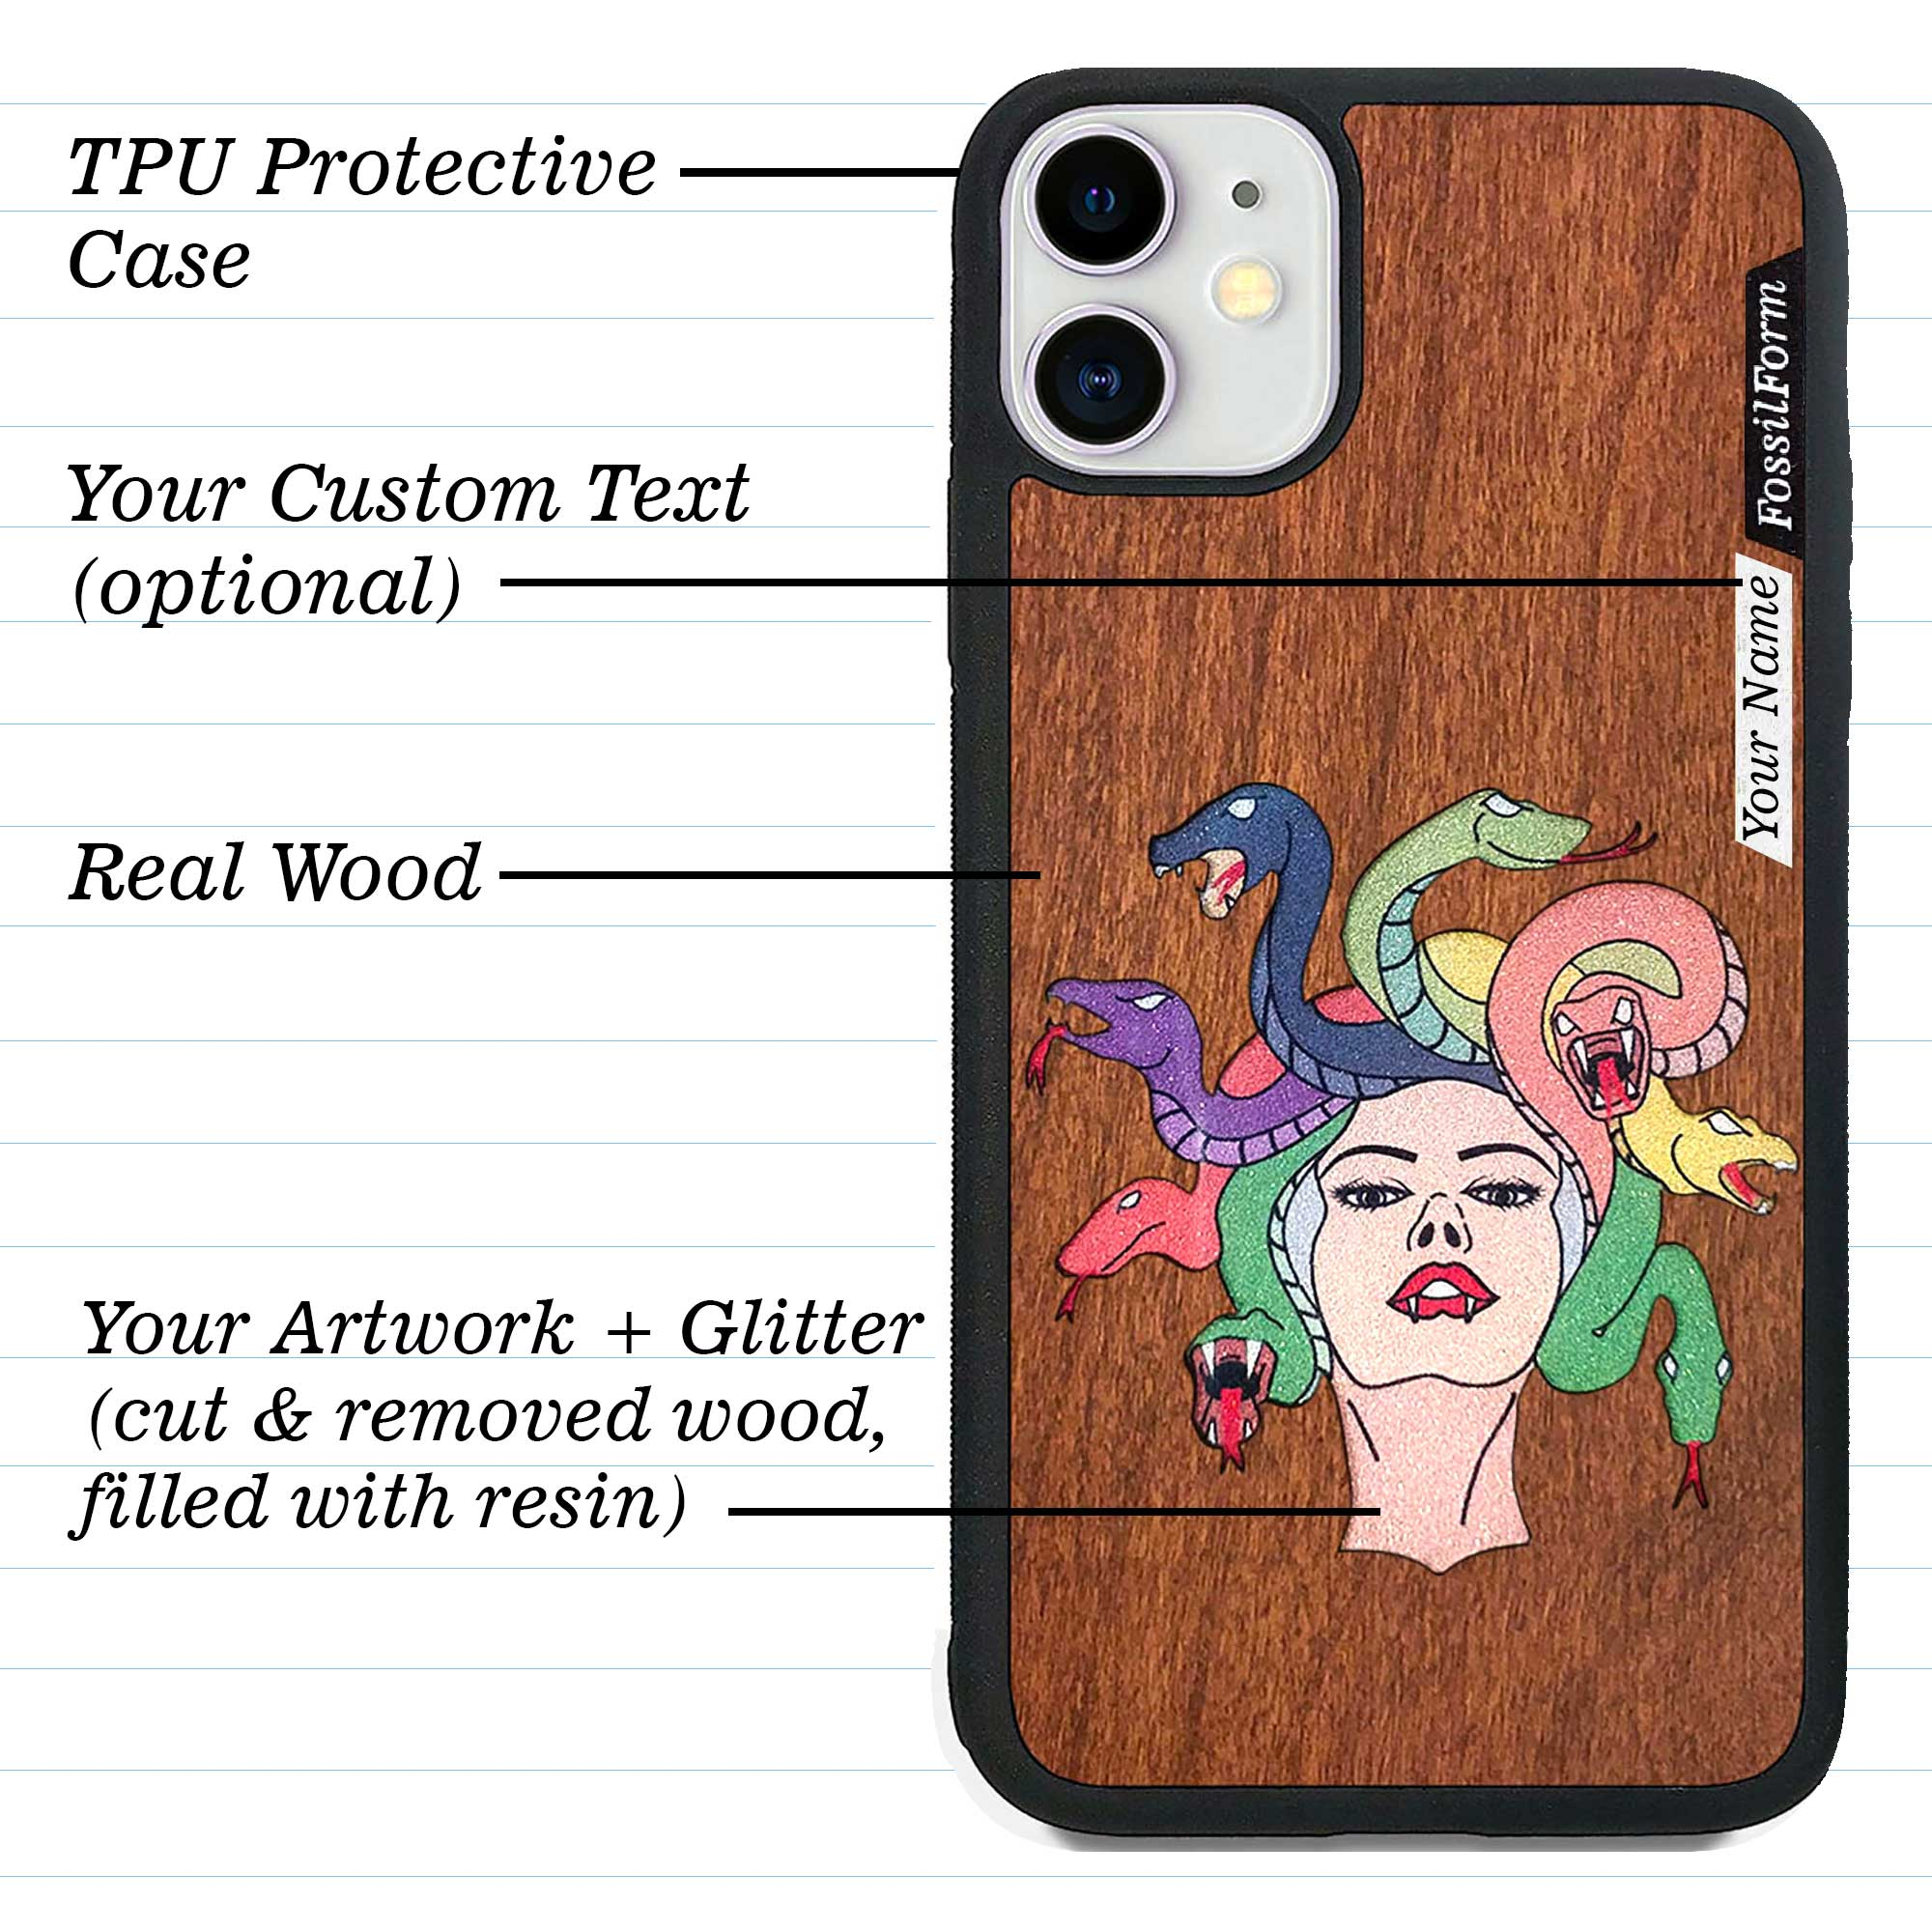 Custom-Made Wood + Resin + Glitter Phone Case - Black